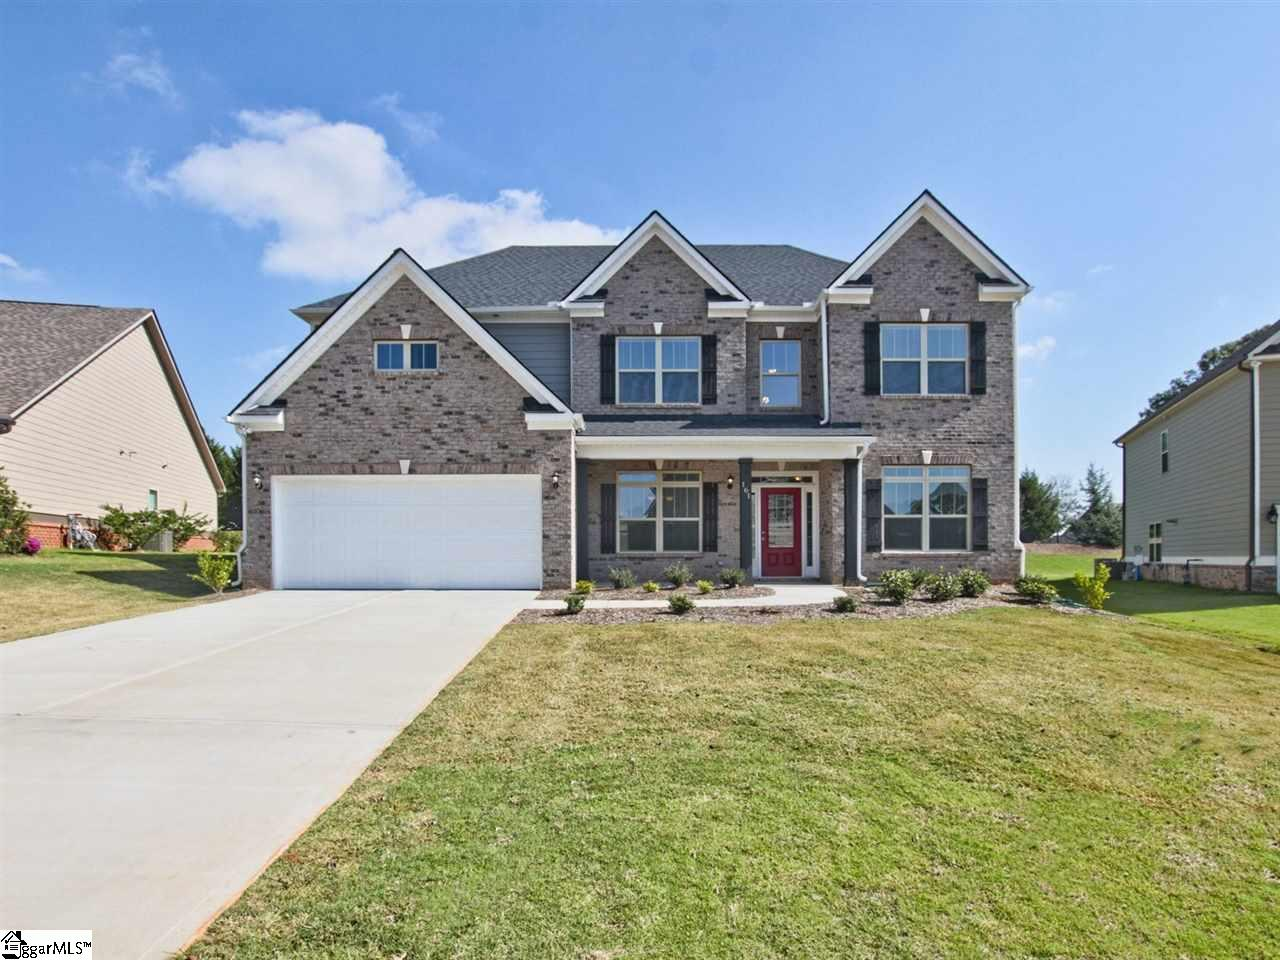 161 Wild Hickory, Easley, SC 29642